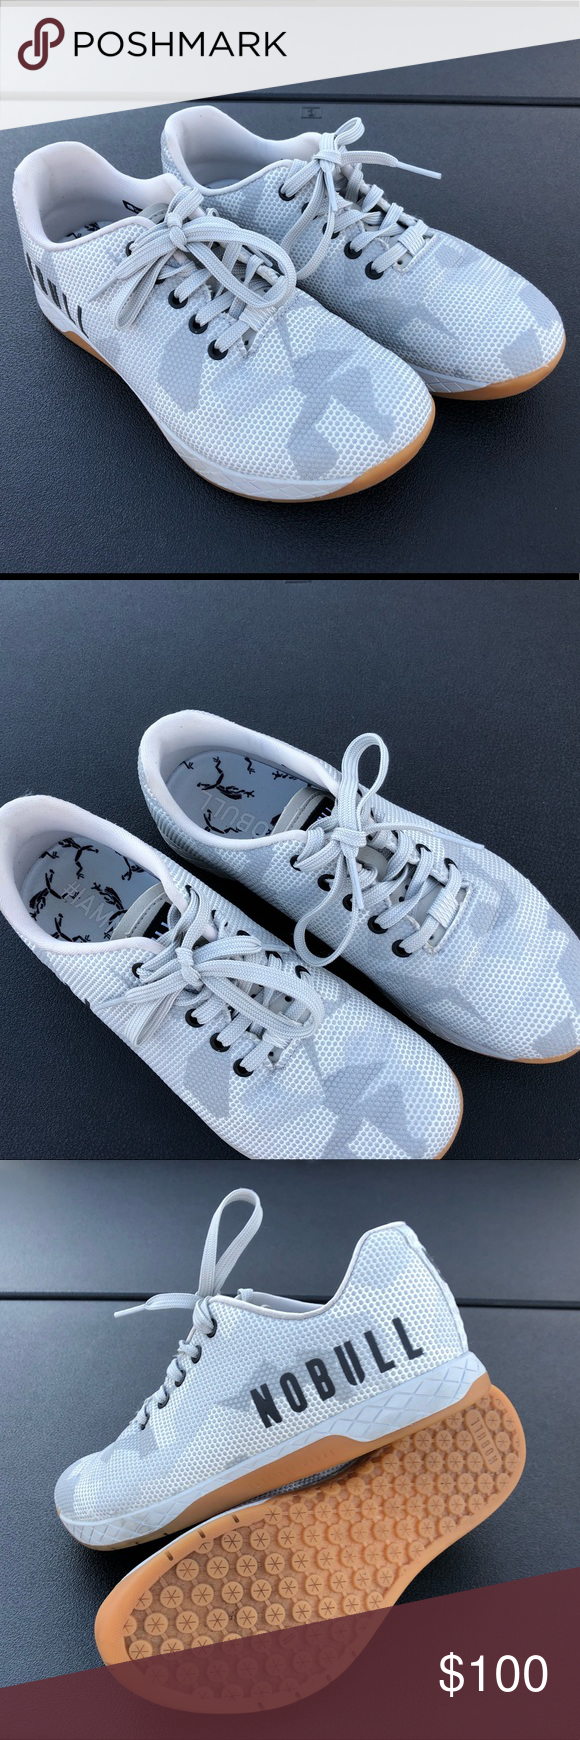 NOBULL Frostbite Camo Trainers in 2020